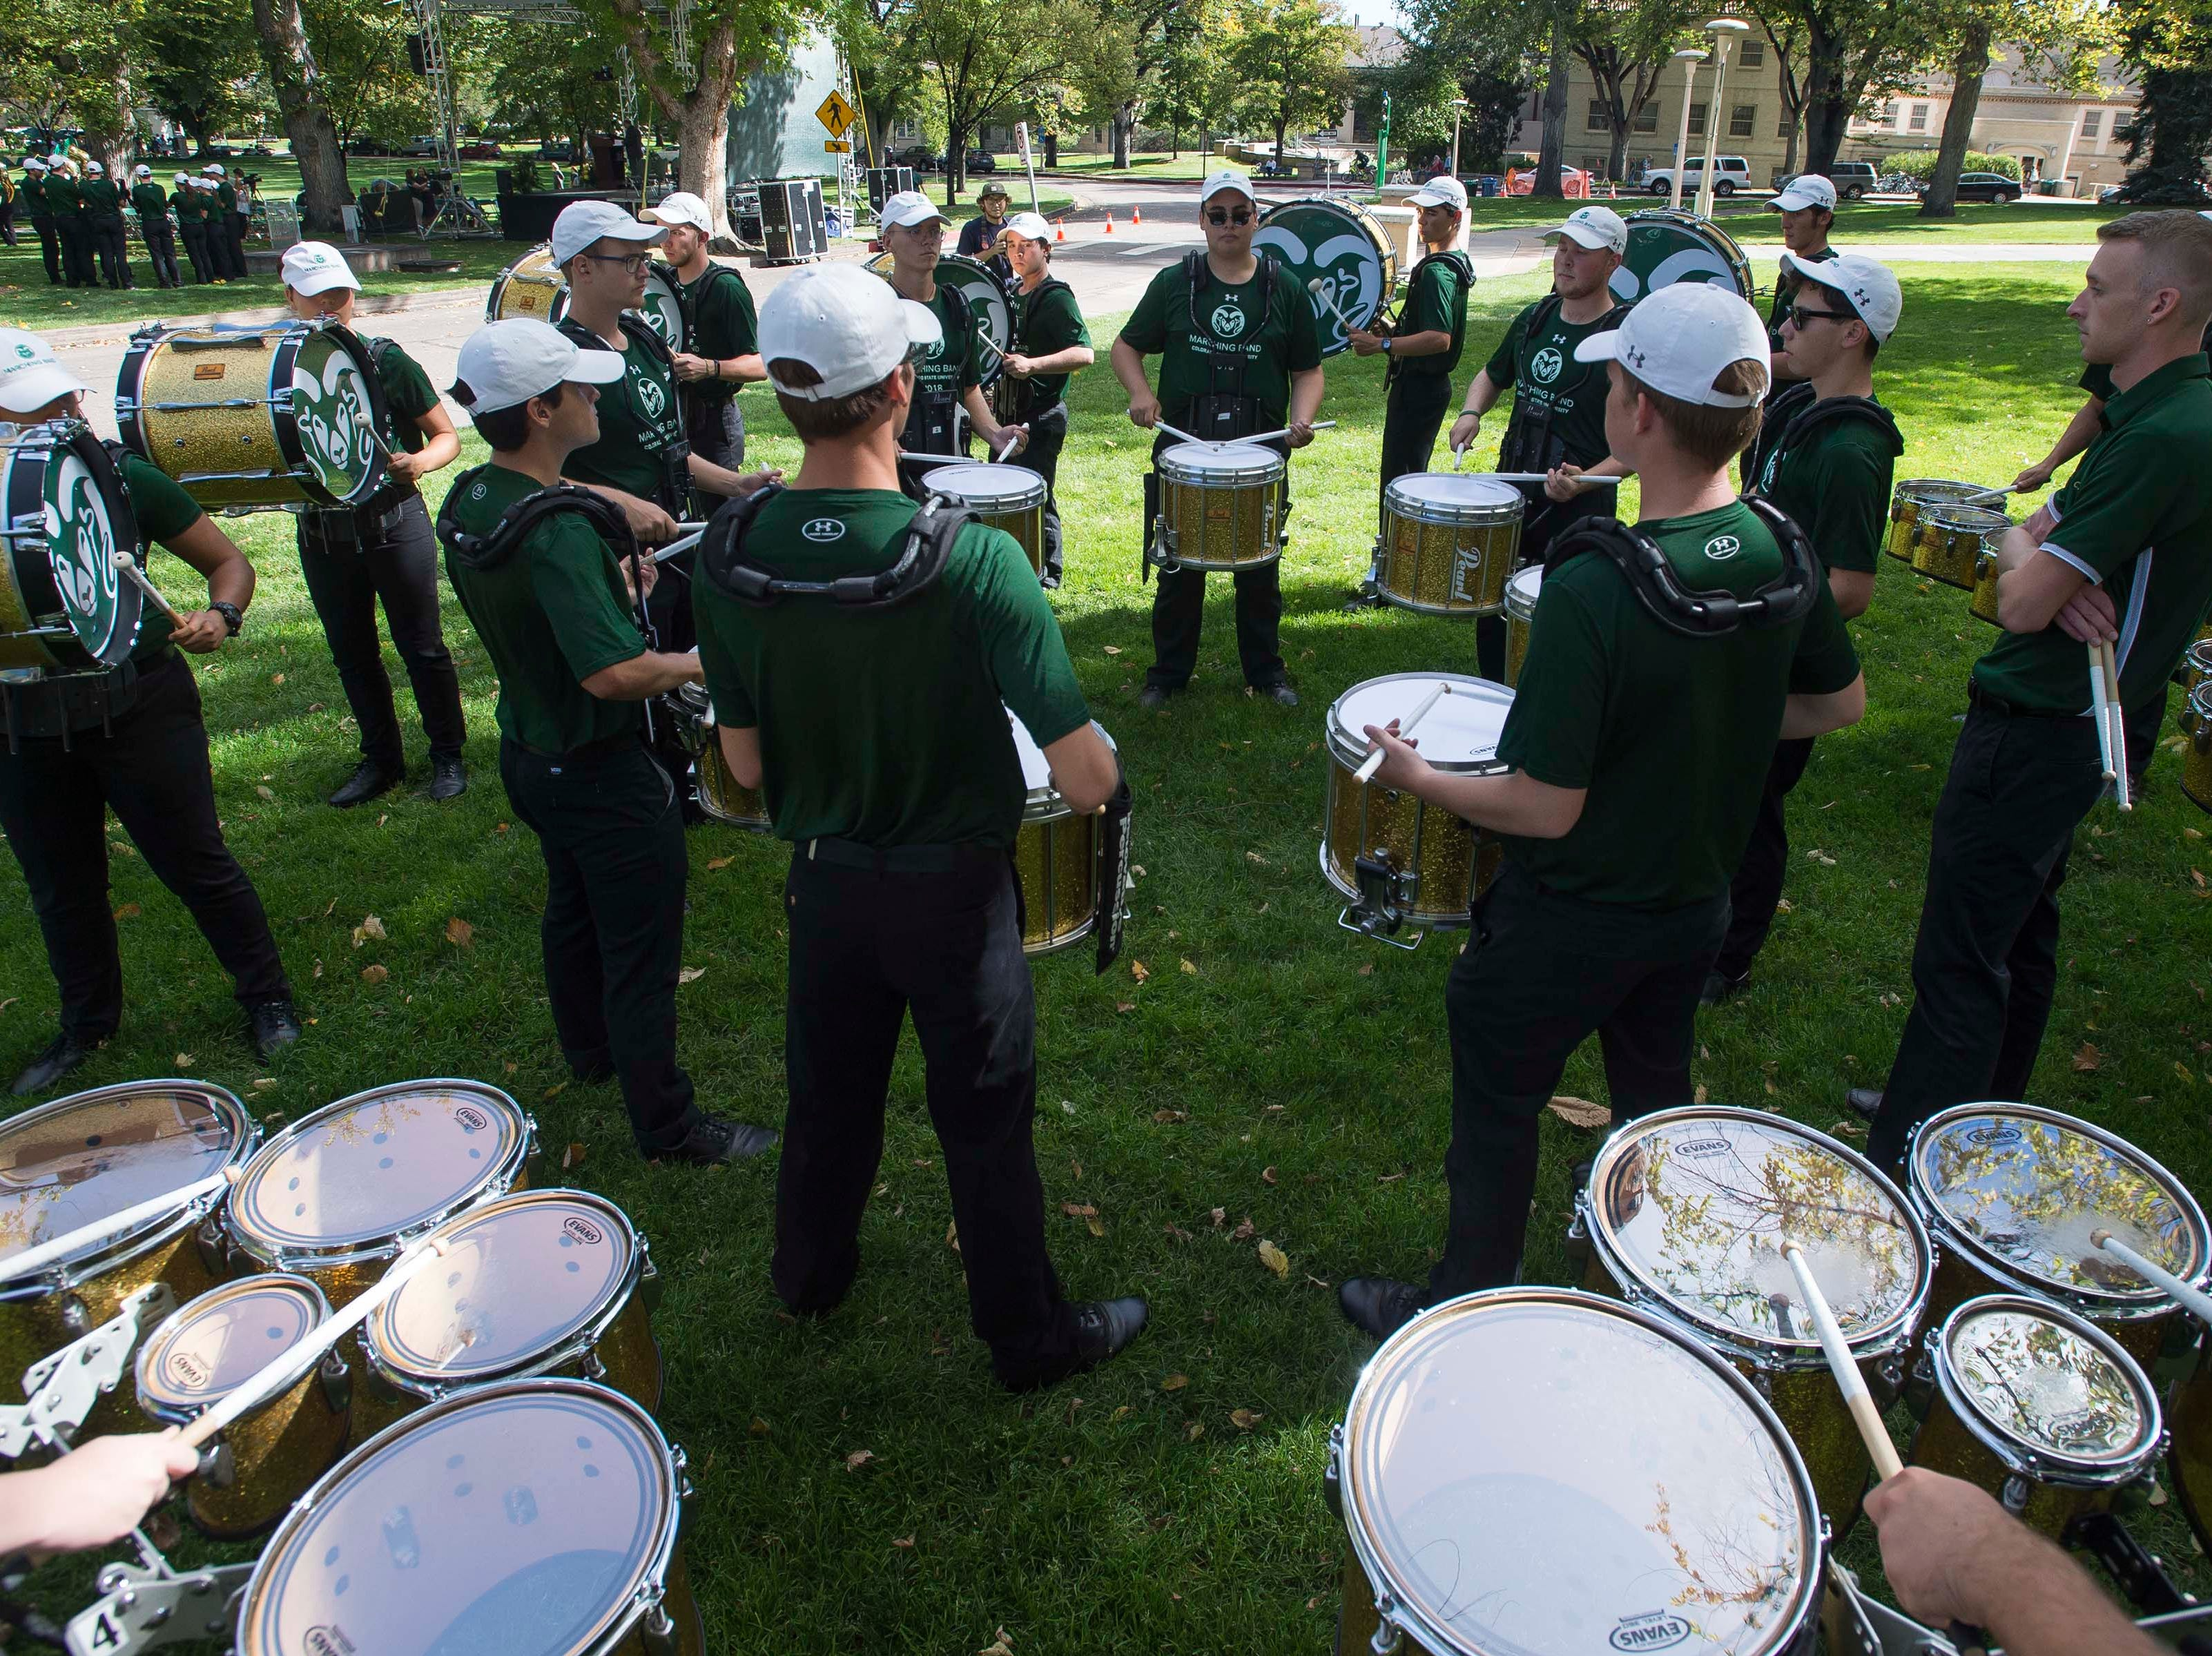 CSU marching ban d drummers practice before the 2018 fall address on Wednesday, Oct. 3, 2018, at the Colorado State University campus in Fort Collins, Colo.